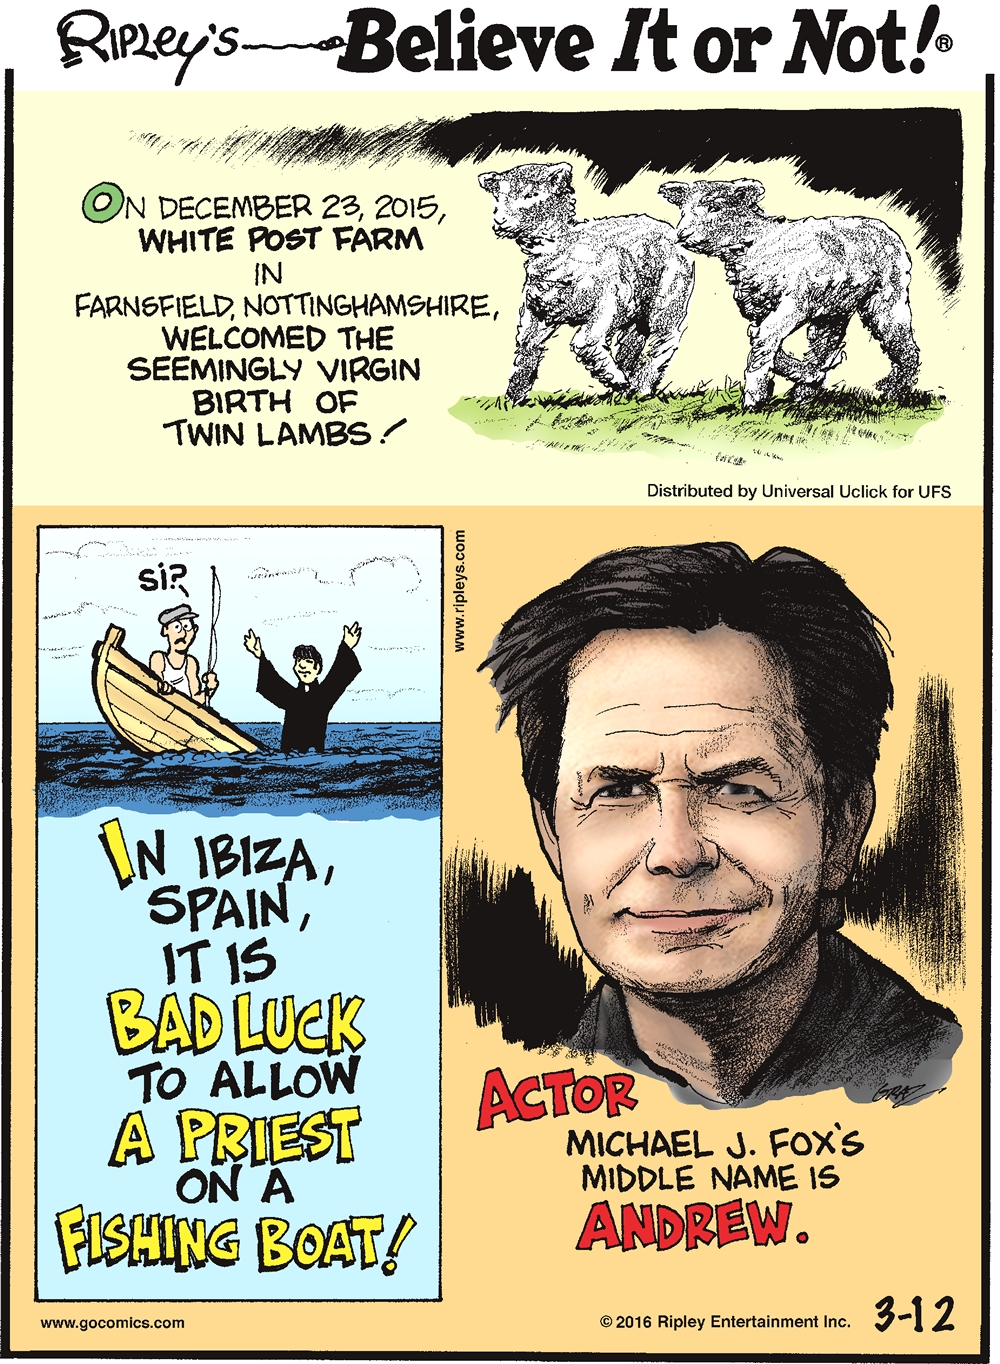 On December 23, 2015, White Post Farm in Farnsfield, Nottinghamshire, welcomed the seemingly virgin birth of twin lambs! --------------------- In Ibiza, Spain, it is bad luck to allow a priest on a fishing boat! --------------------- Actor Michael J. Fox's middle name is Andrew.